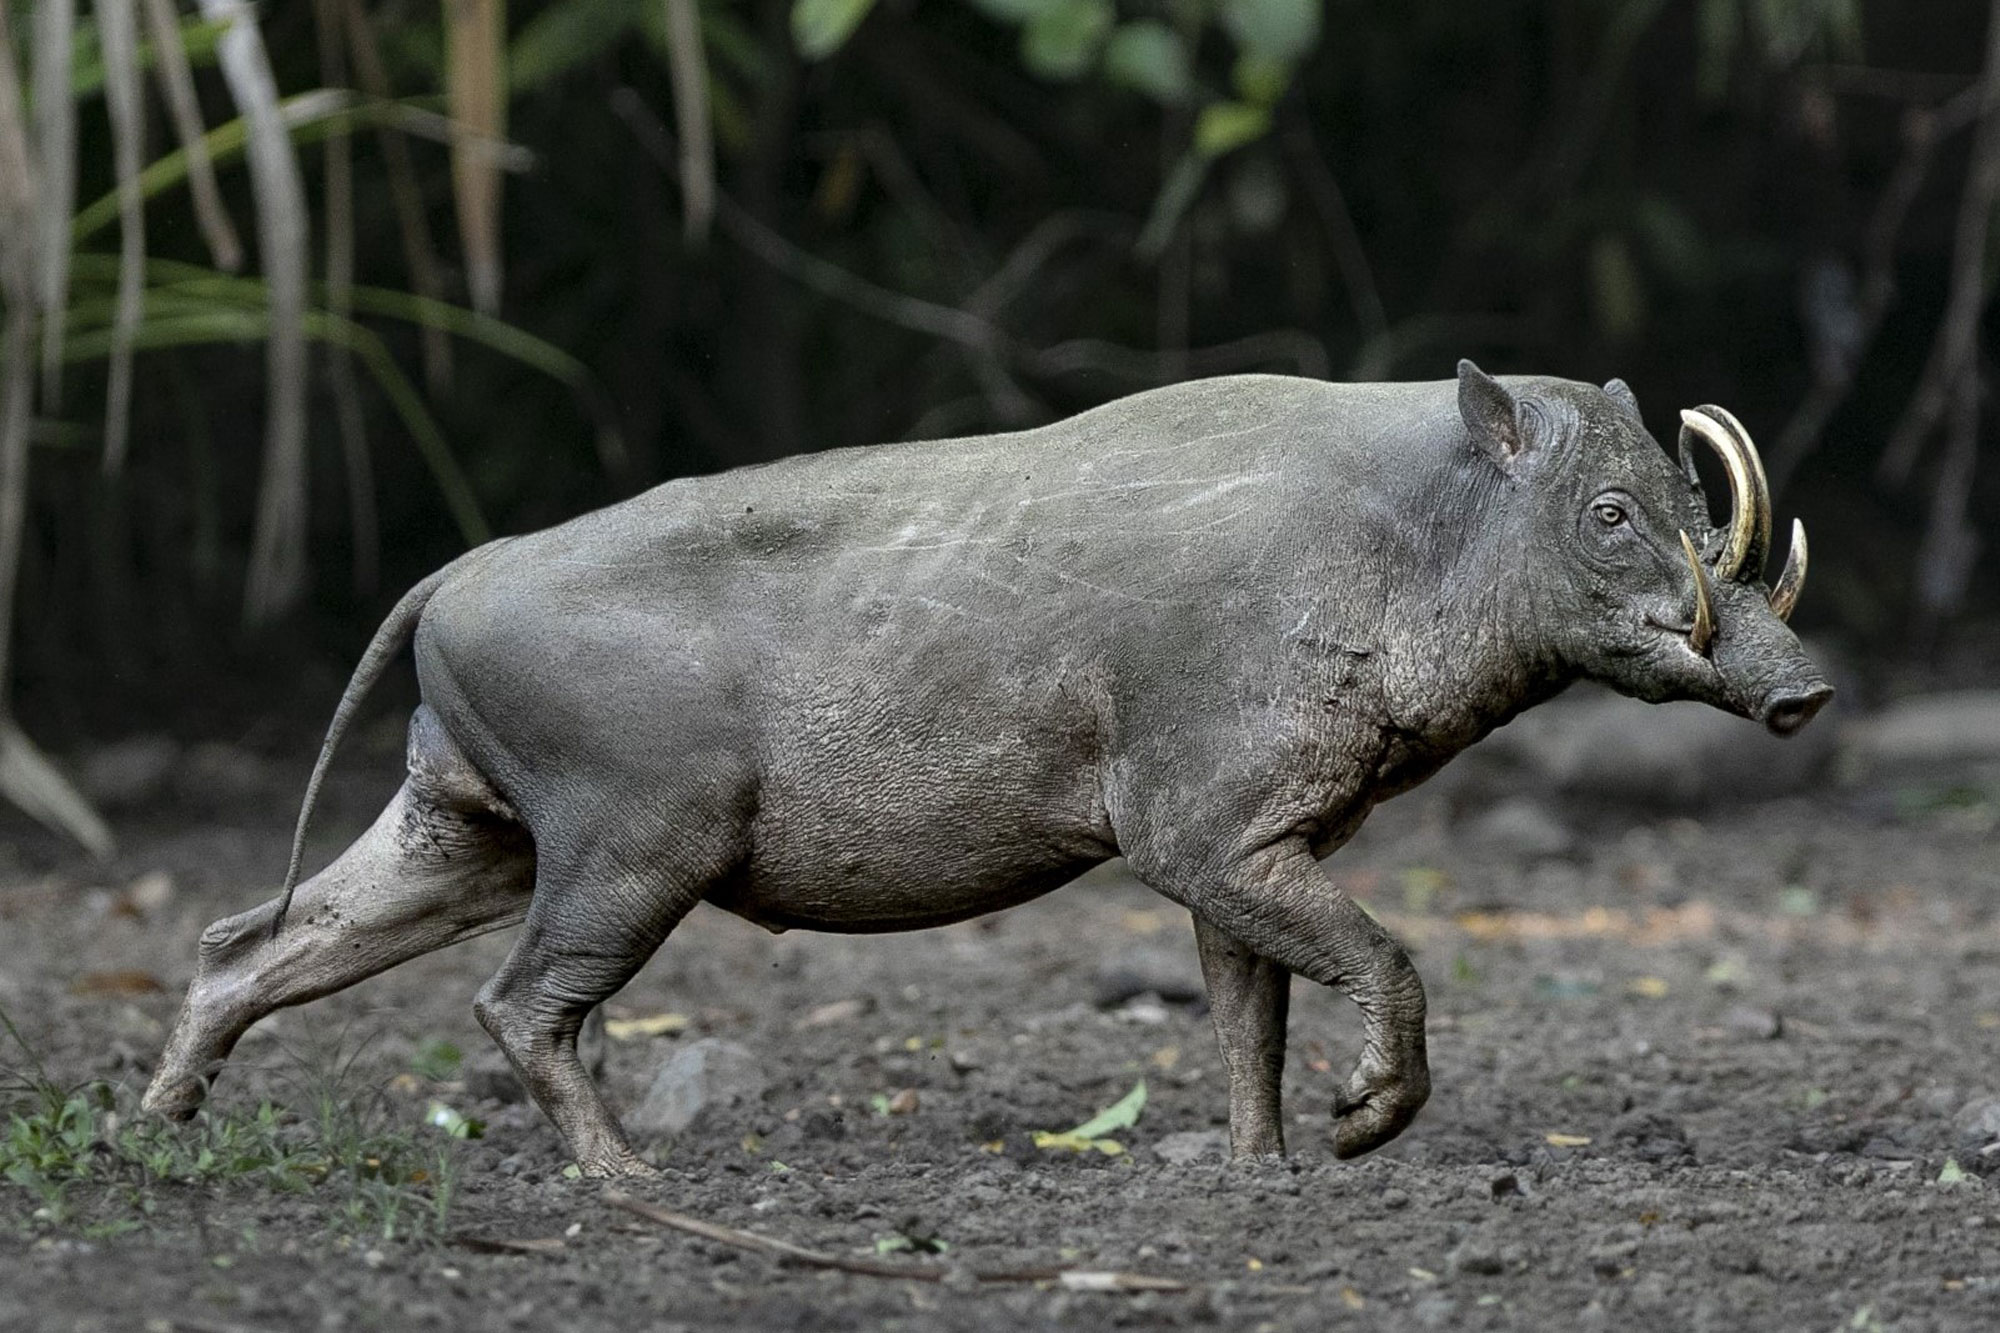 The bizarre Sulawesi pig-deer (babirusa) is restricted to the island of Sulawesi. The species is declining due to trophy hunting and habitat loss, but a sizeable population hangs on in Nantu Forest, Gorontalo.